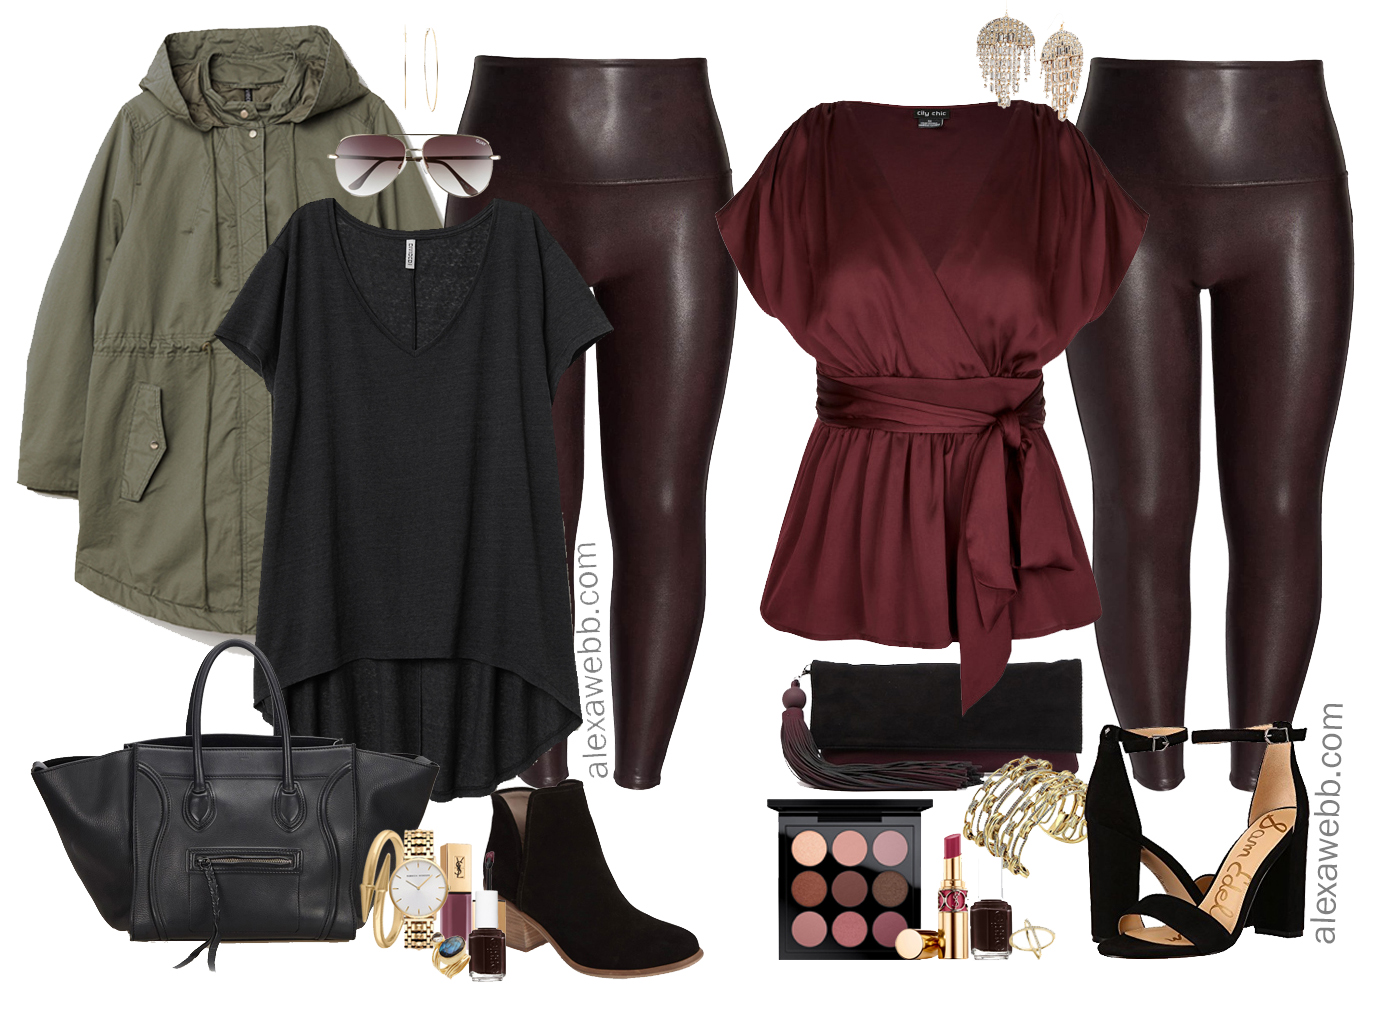 b3a4f6076b457 Plus Size Faux Leather Leggings Outfit Ideas - Alexa Webb